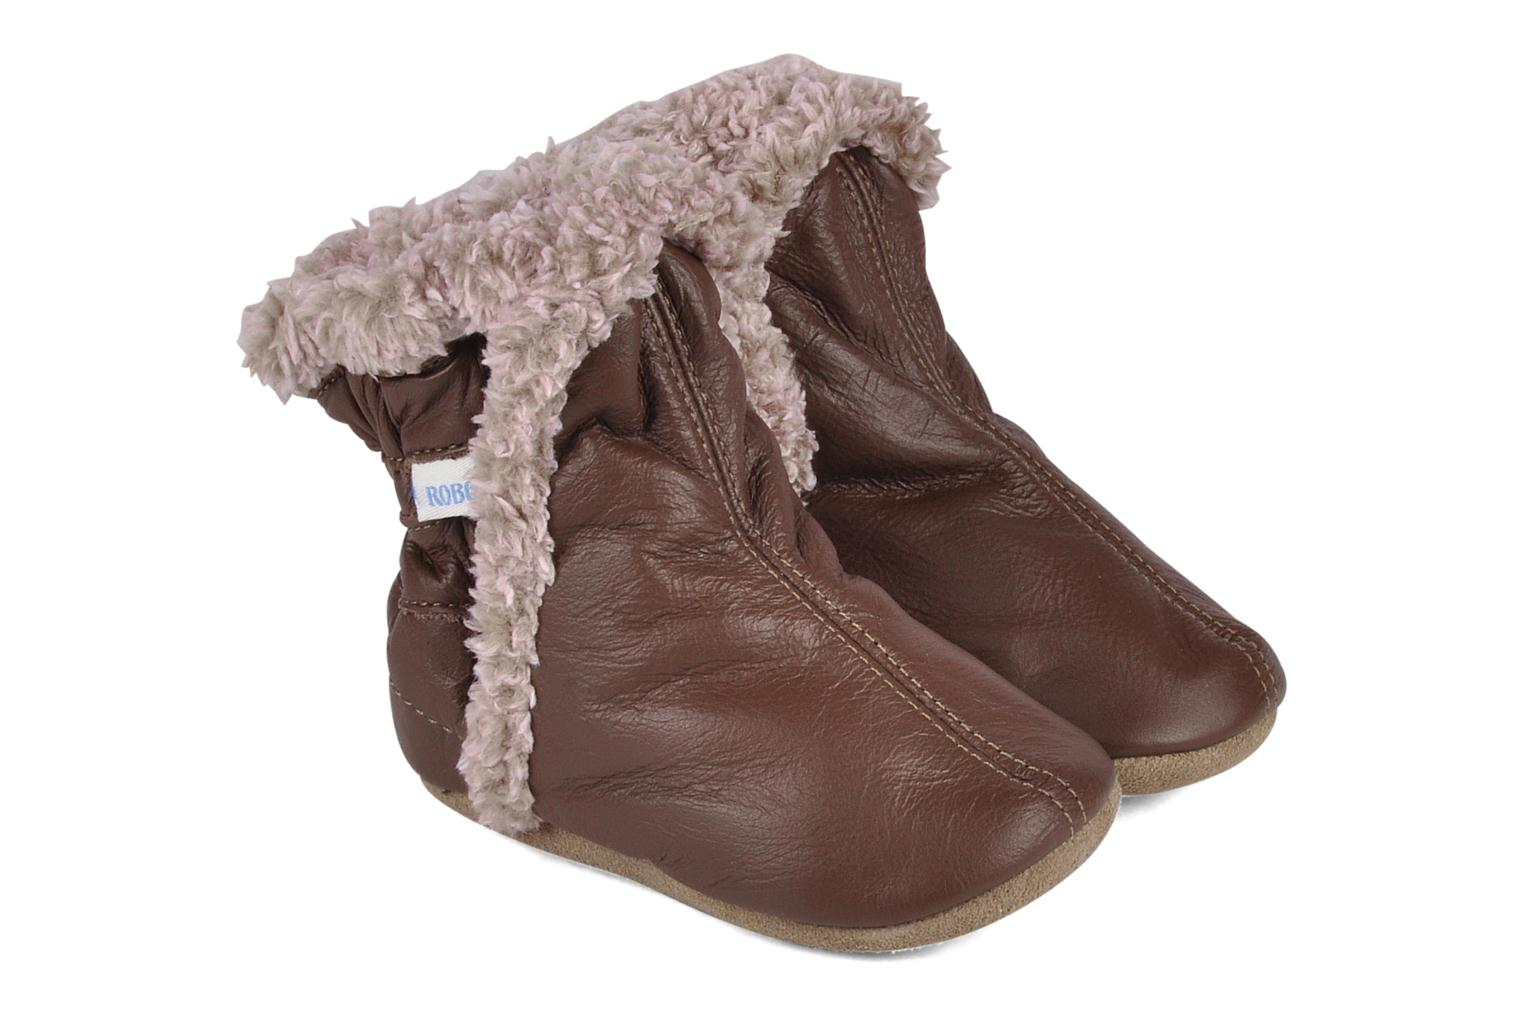 Pantoffels Classic bootie by Robeez